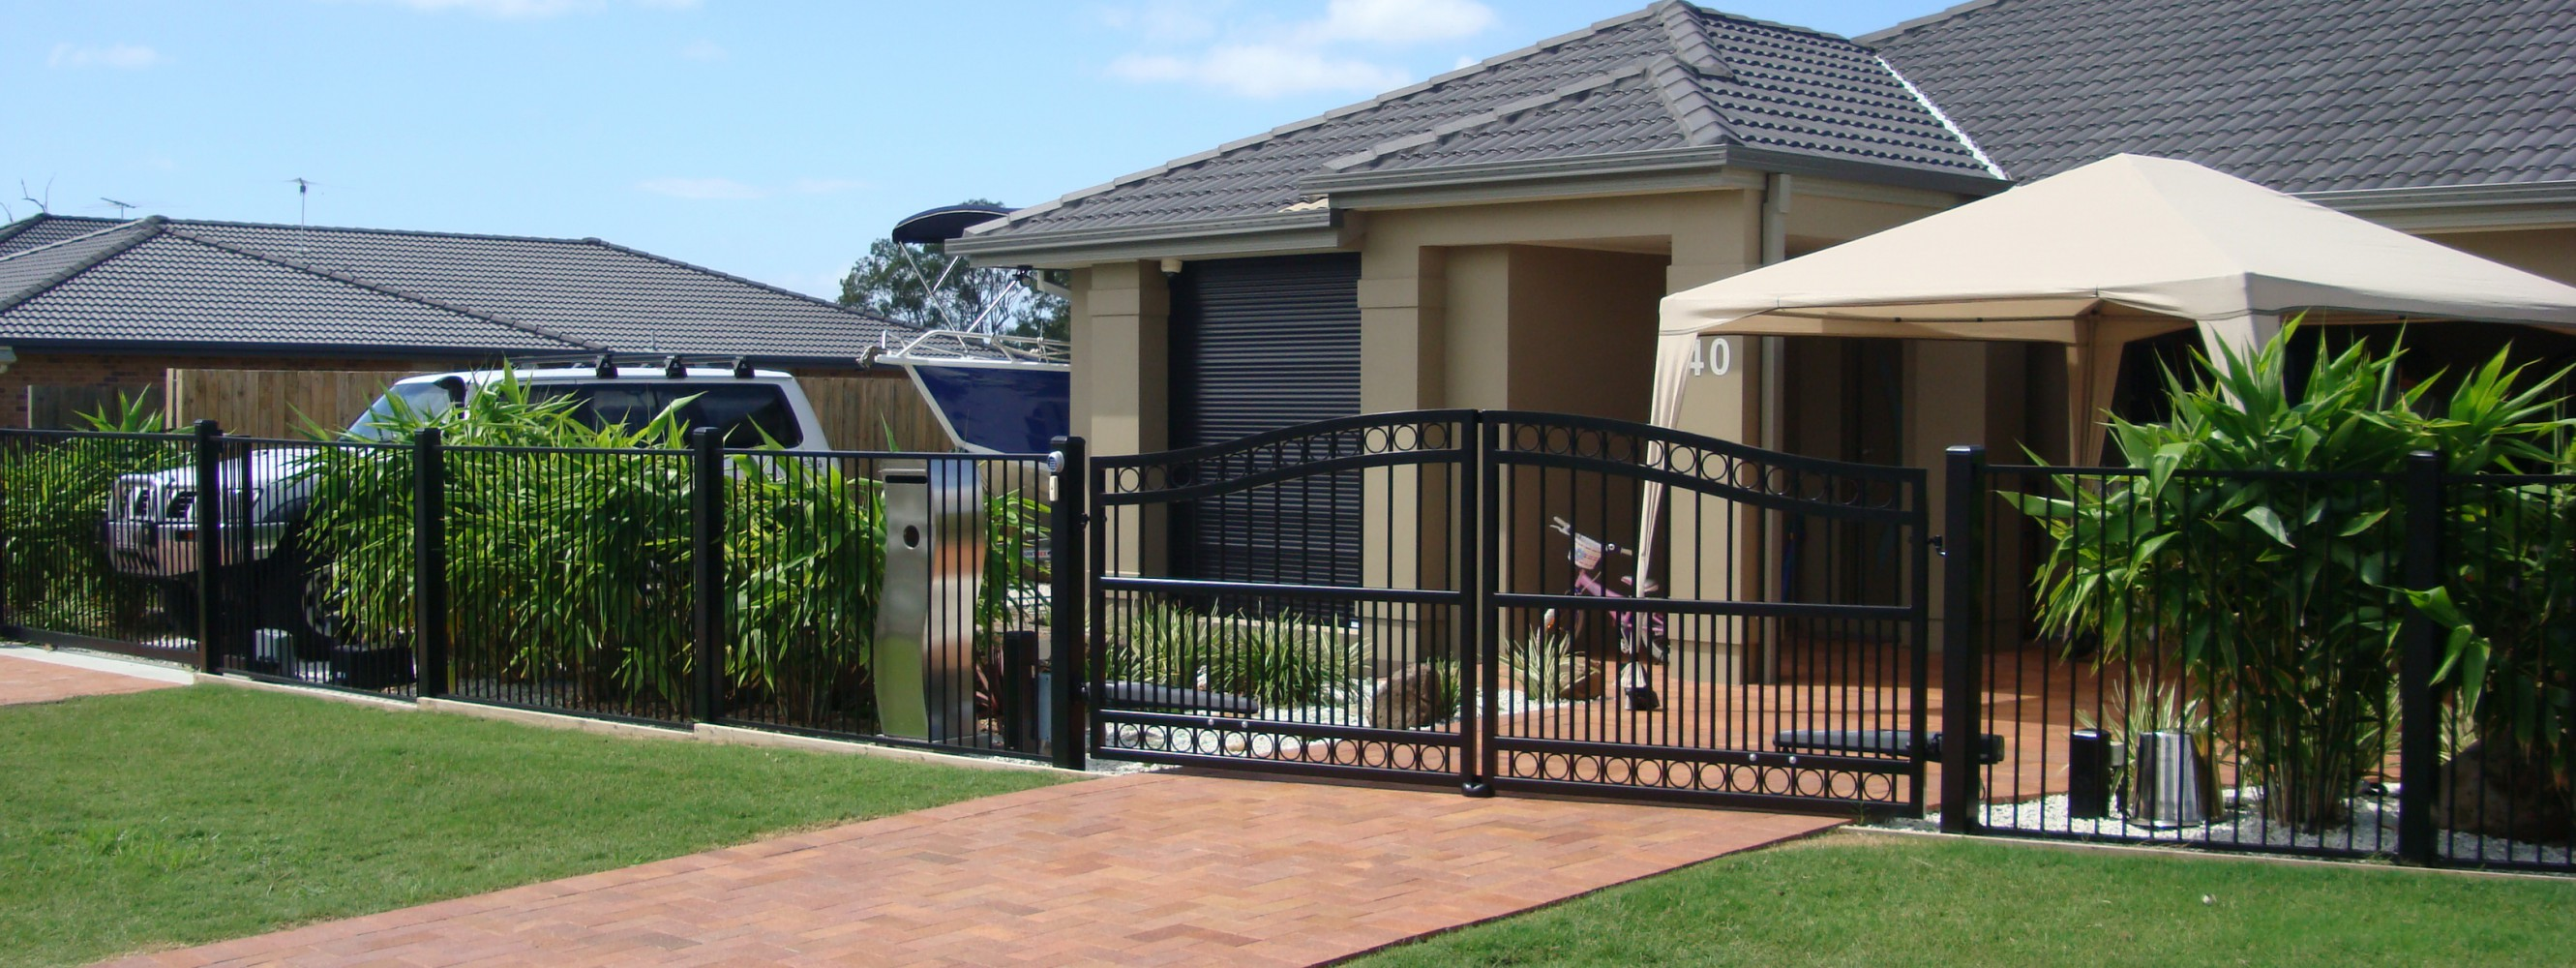 Automatic Gate Safety for your family